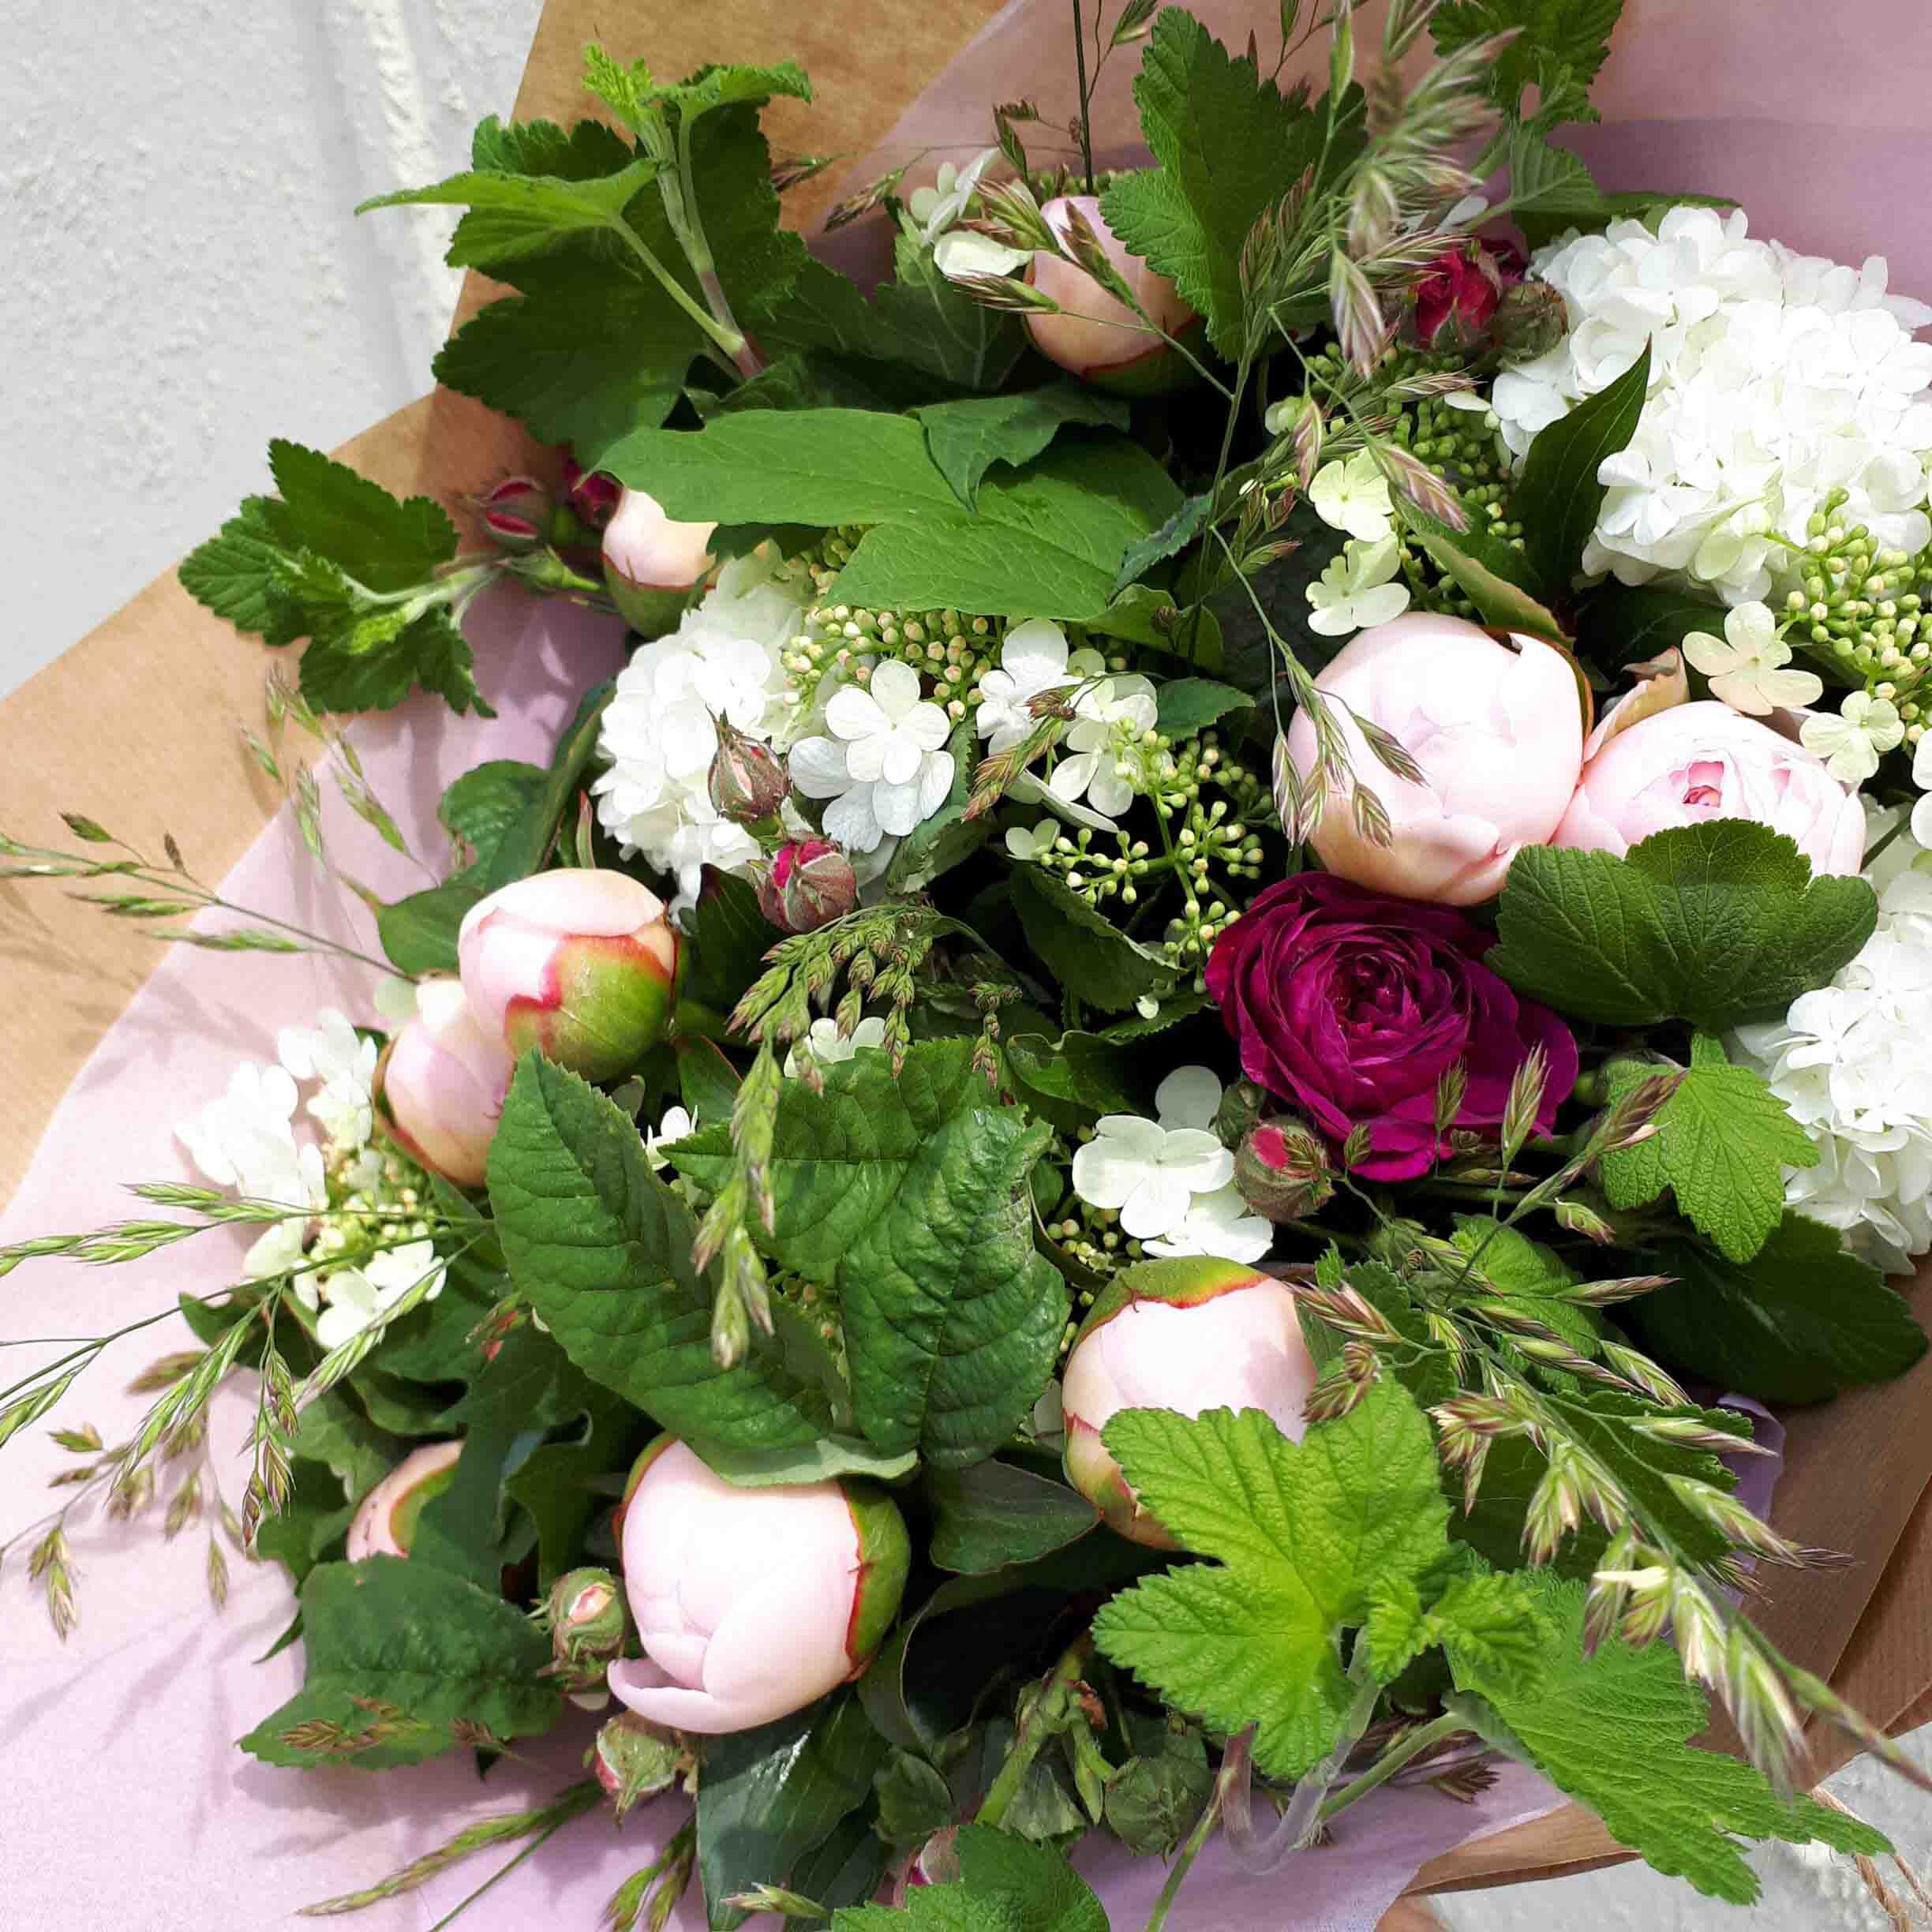 Maison Flores 7 - Click and collect Angers